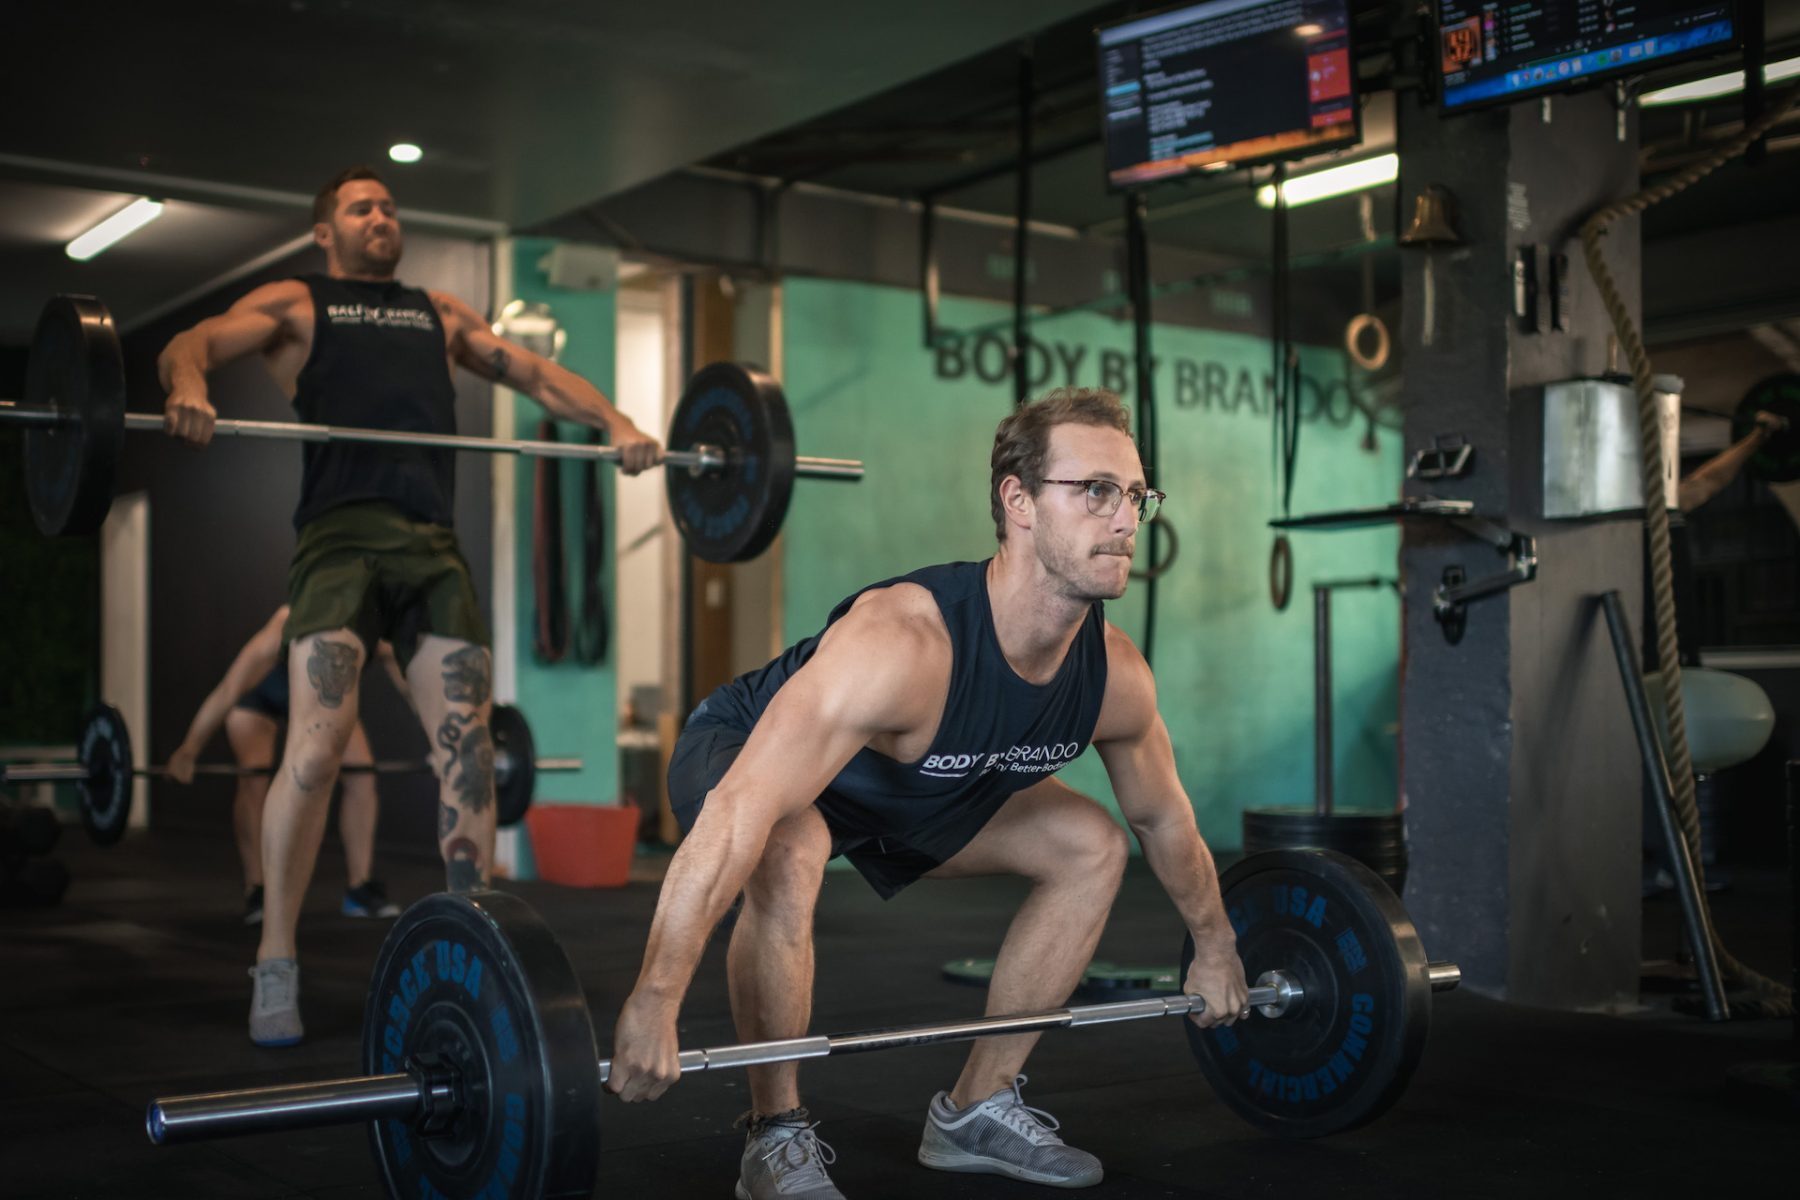 Barbell Training: Small Group Training in Sydney